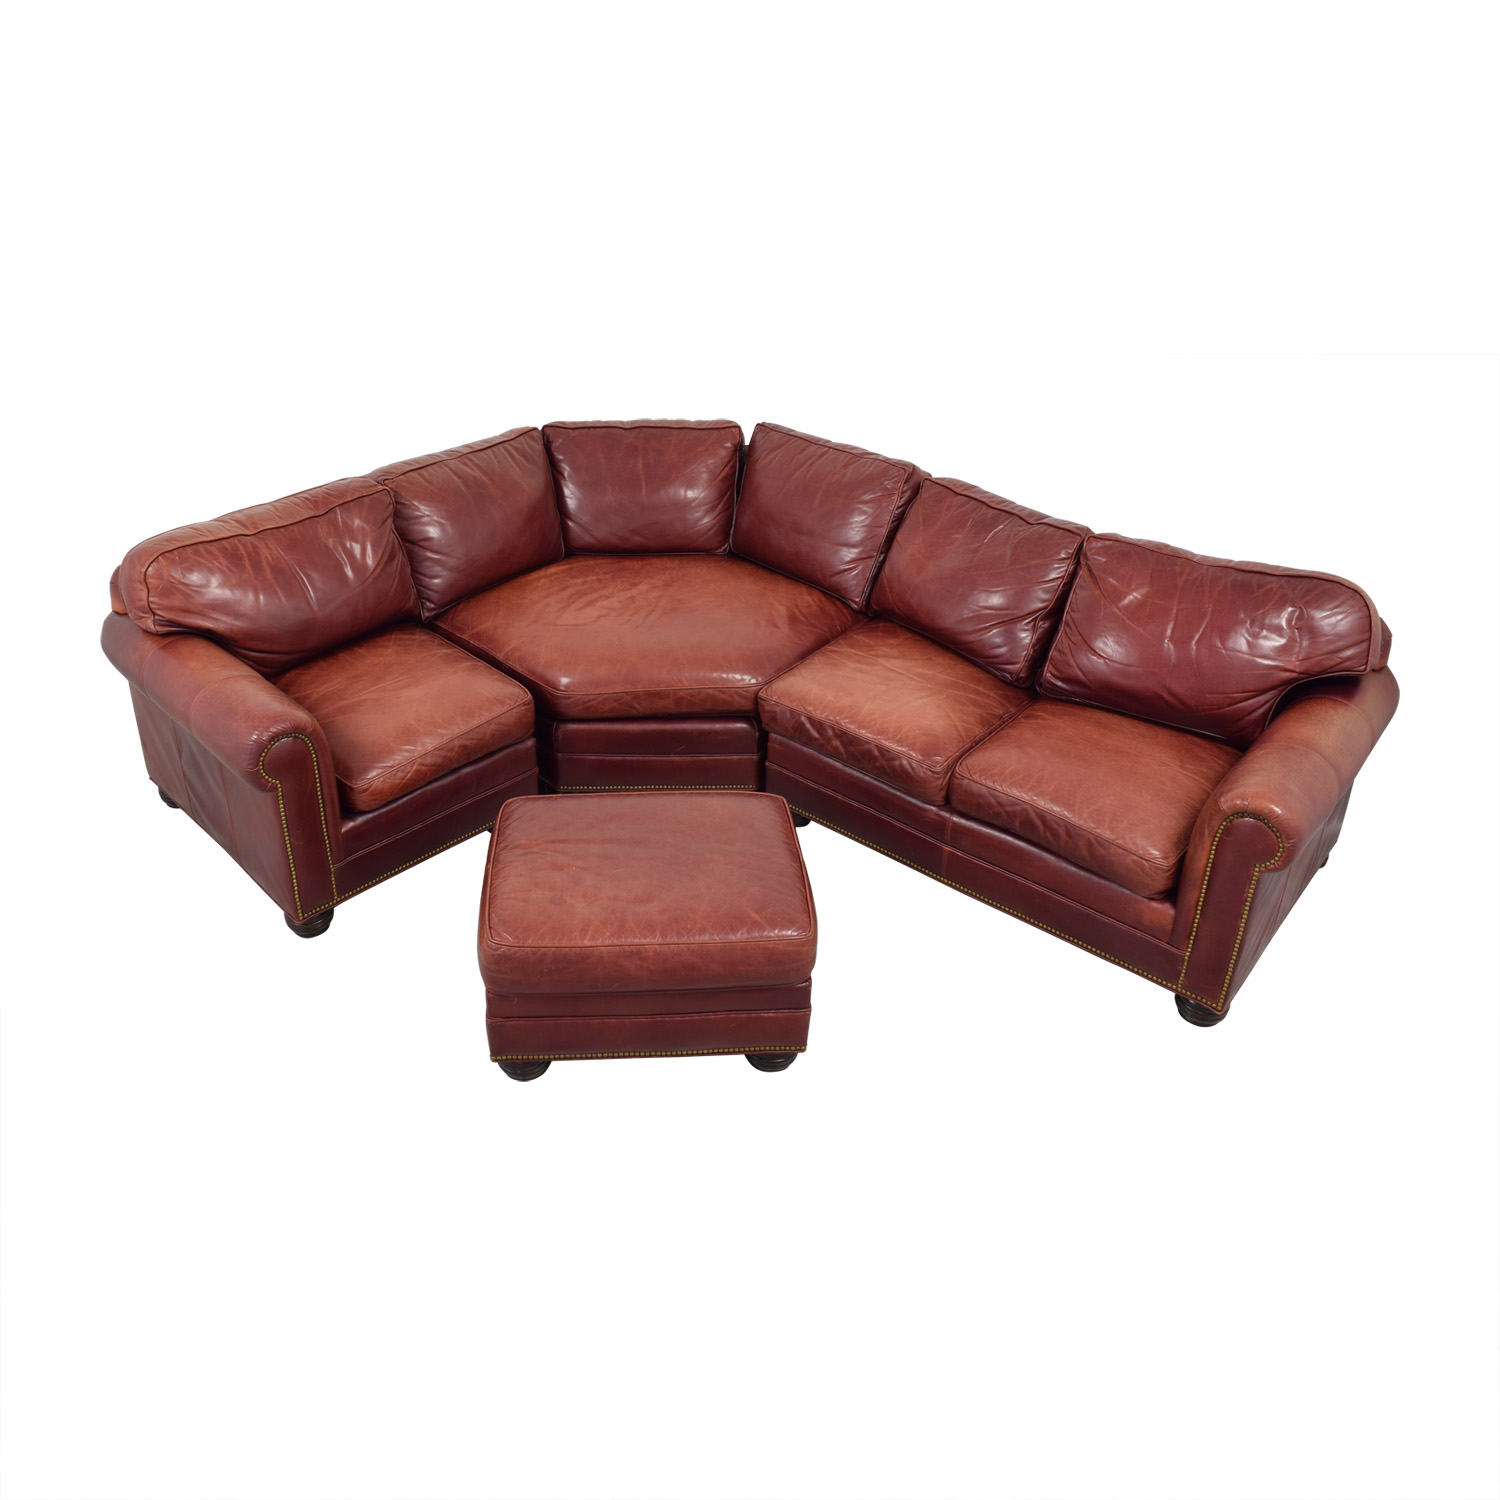 Zagaroli Classics Zagaroli Classics Oxblood Leather Sectional with Ottoman Sectionals